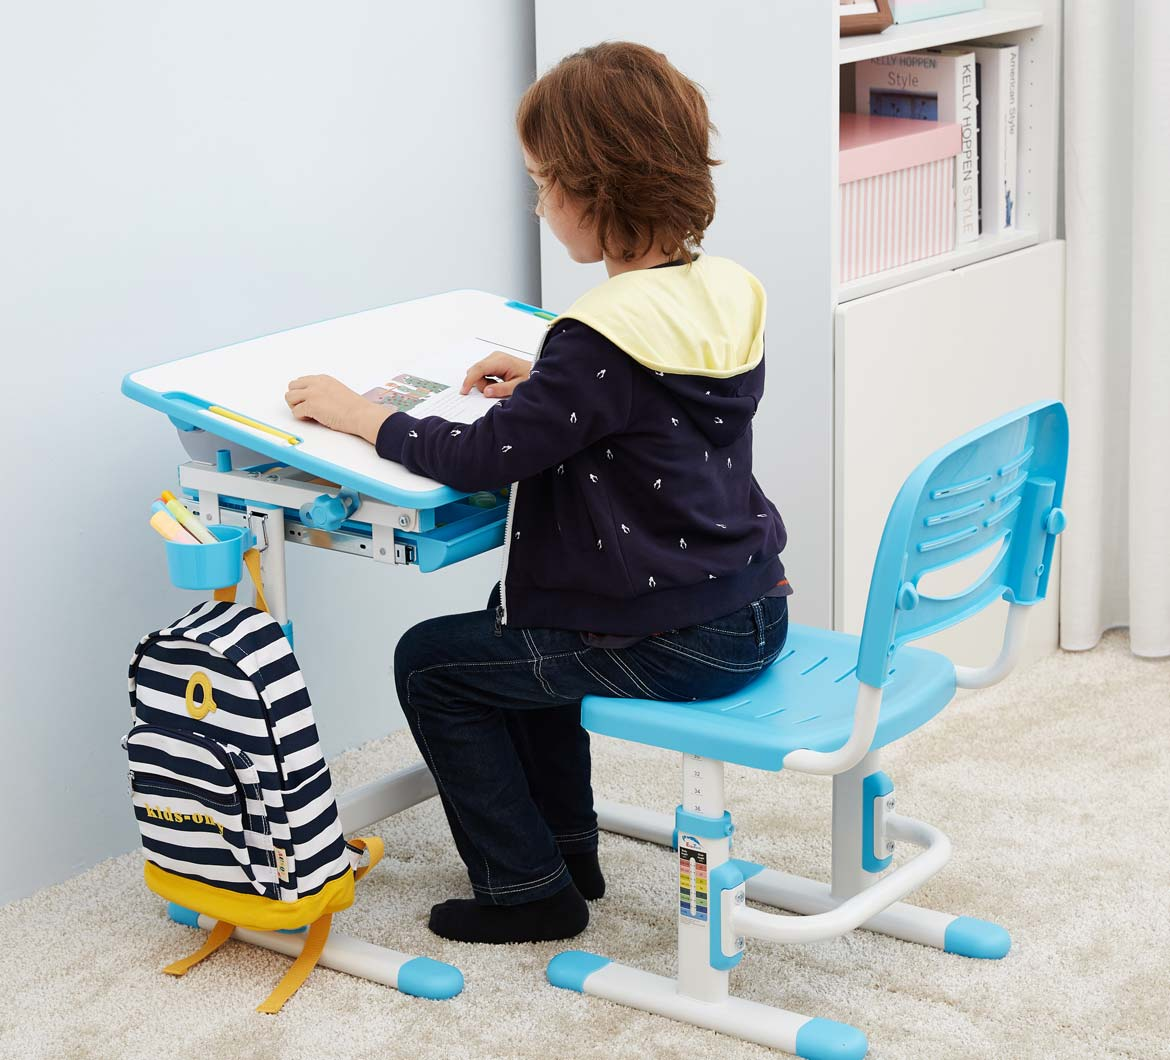 kids-table-chair-study-desk-with-tilt-desktop-blue-desk-for-boys-and-girls-portfolio-mini-blue-3